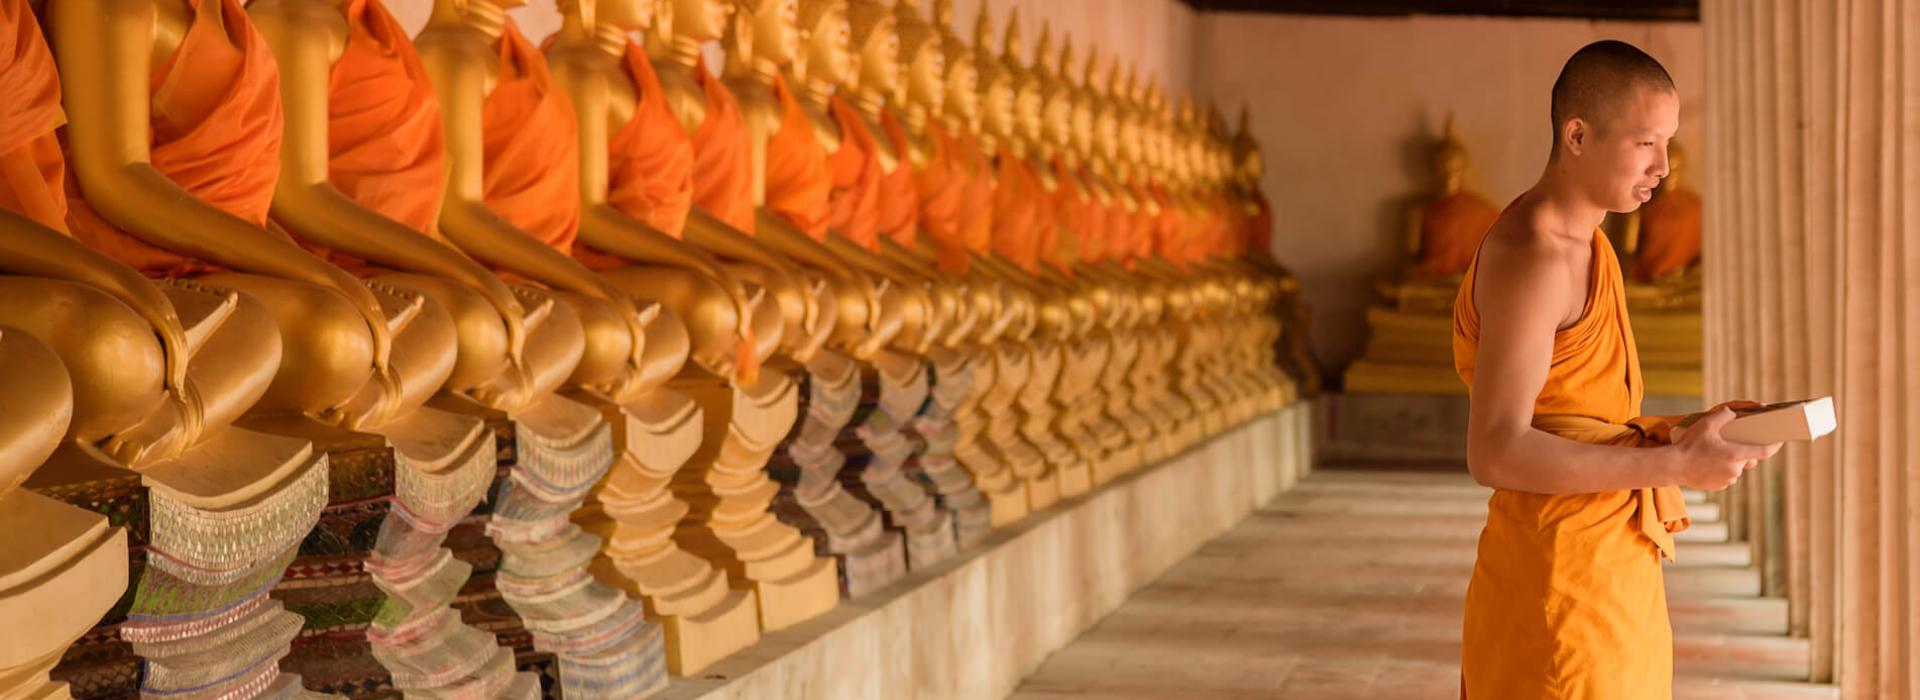 A monk in orange robes standing in front of a line of statues in a temple.